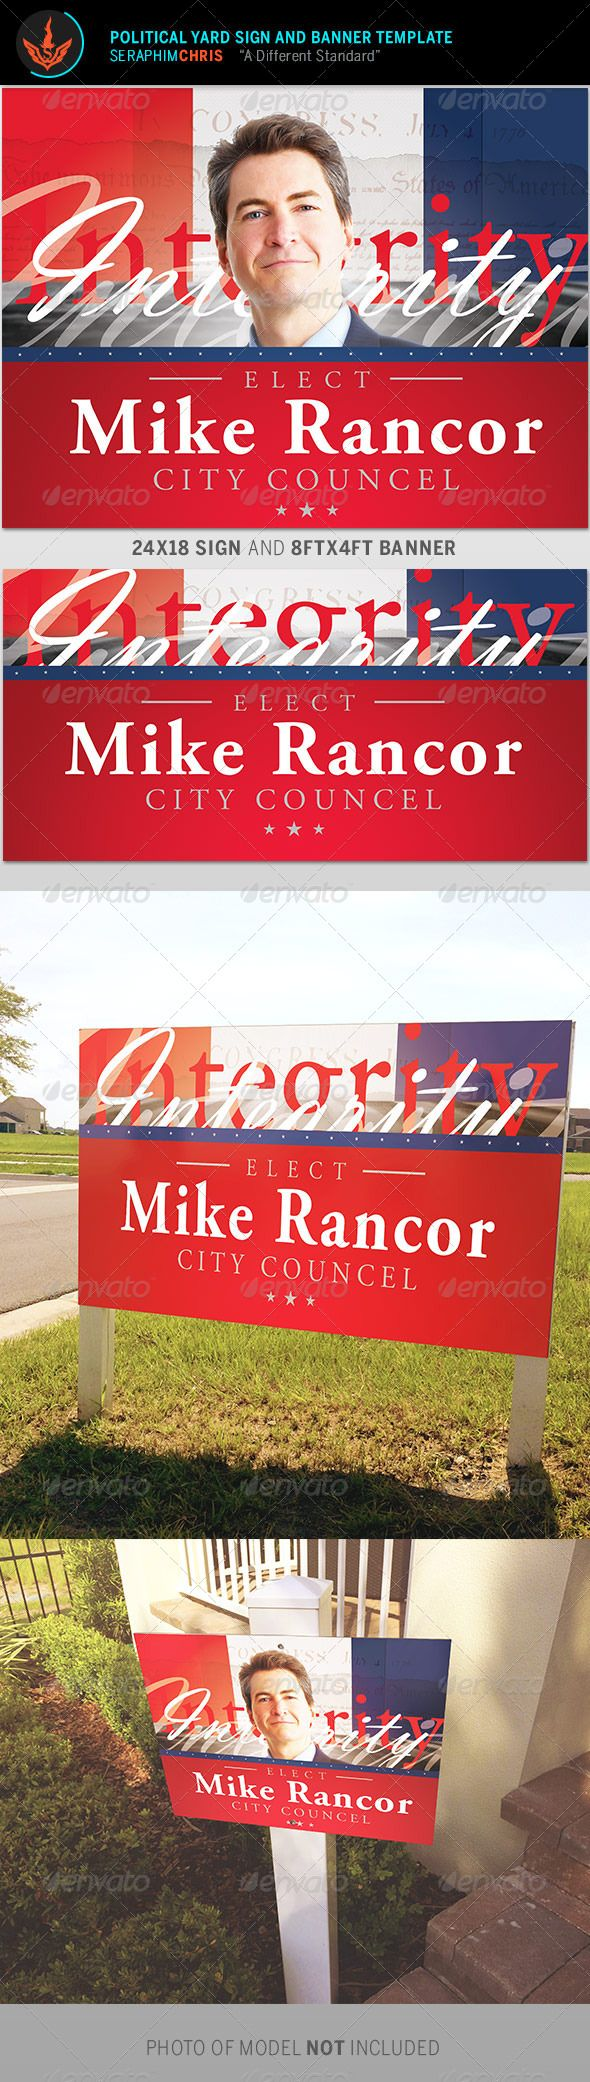 Political Yard Sign and Banner Template — Photoshop PSD #democracy #district • Available here → https://graphicriver.net/item/political-yard-sign-and-banner-template/8737846?ref=pxcr